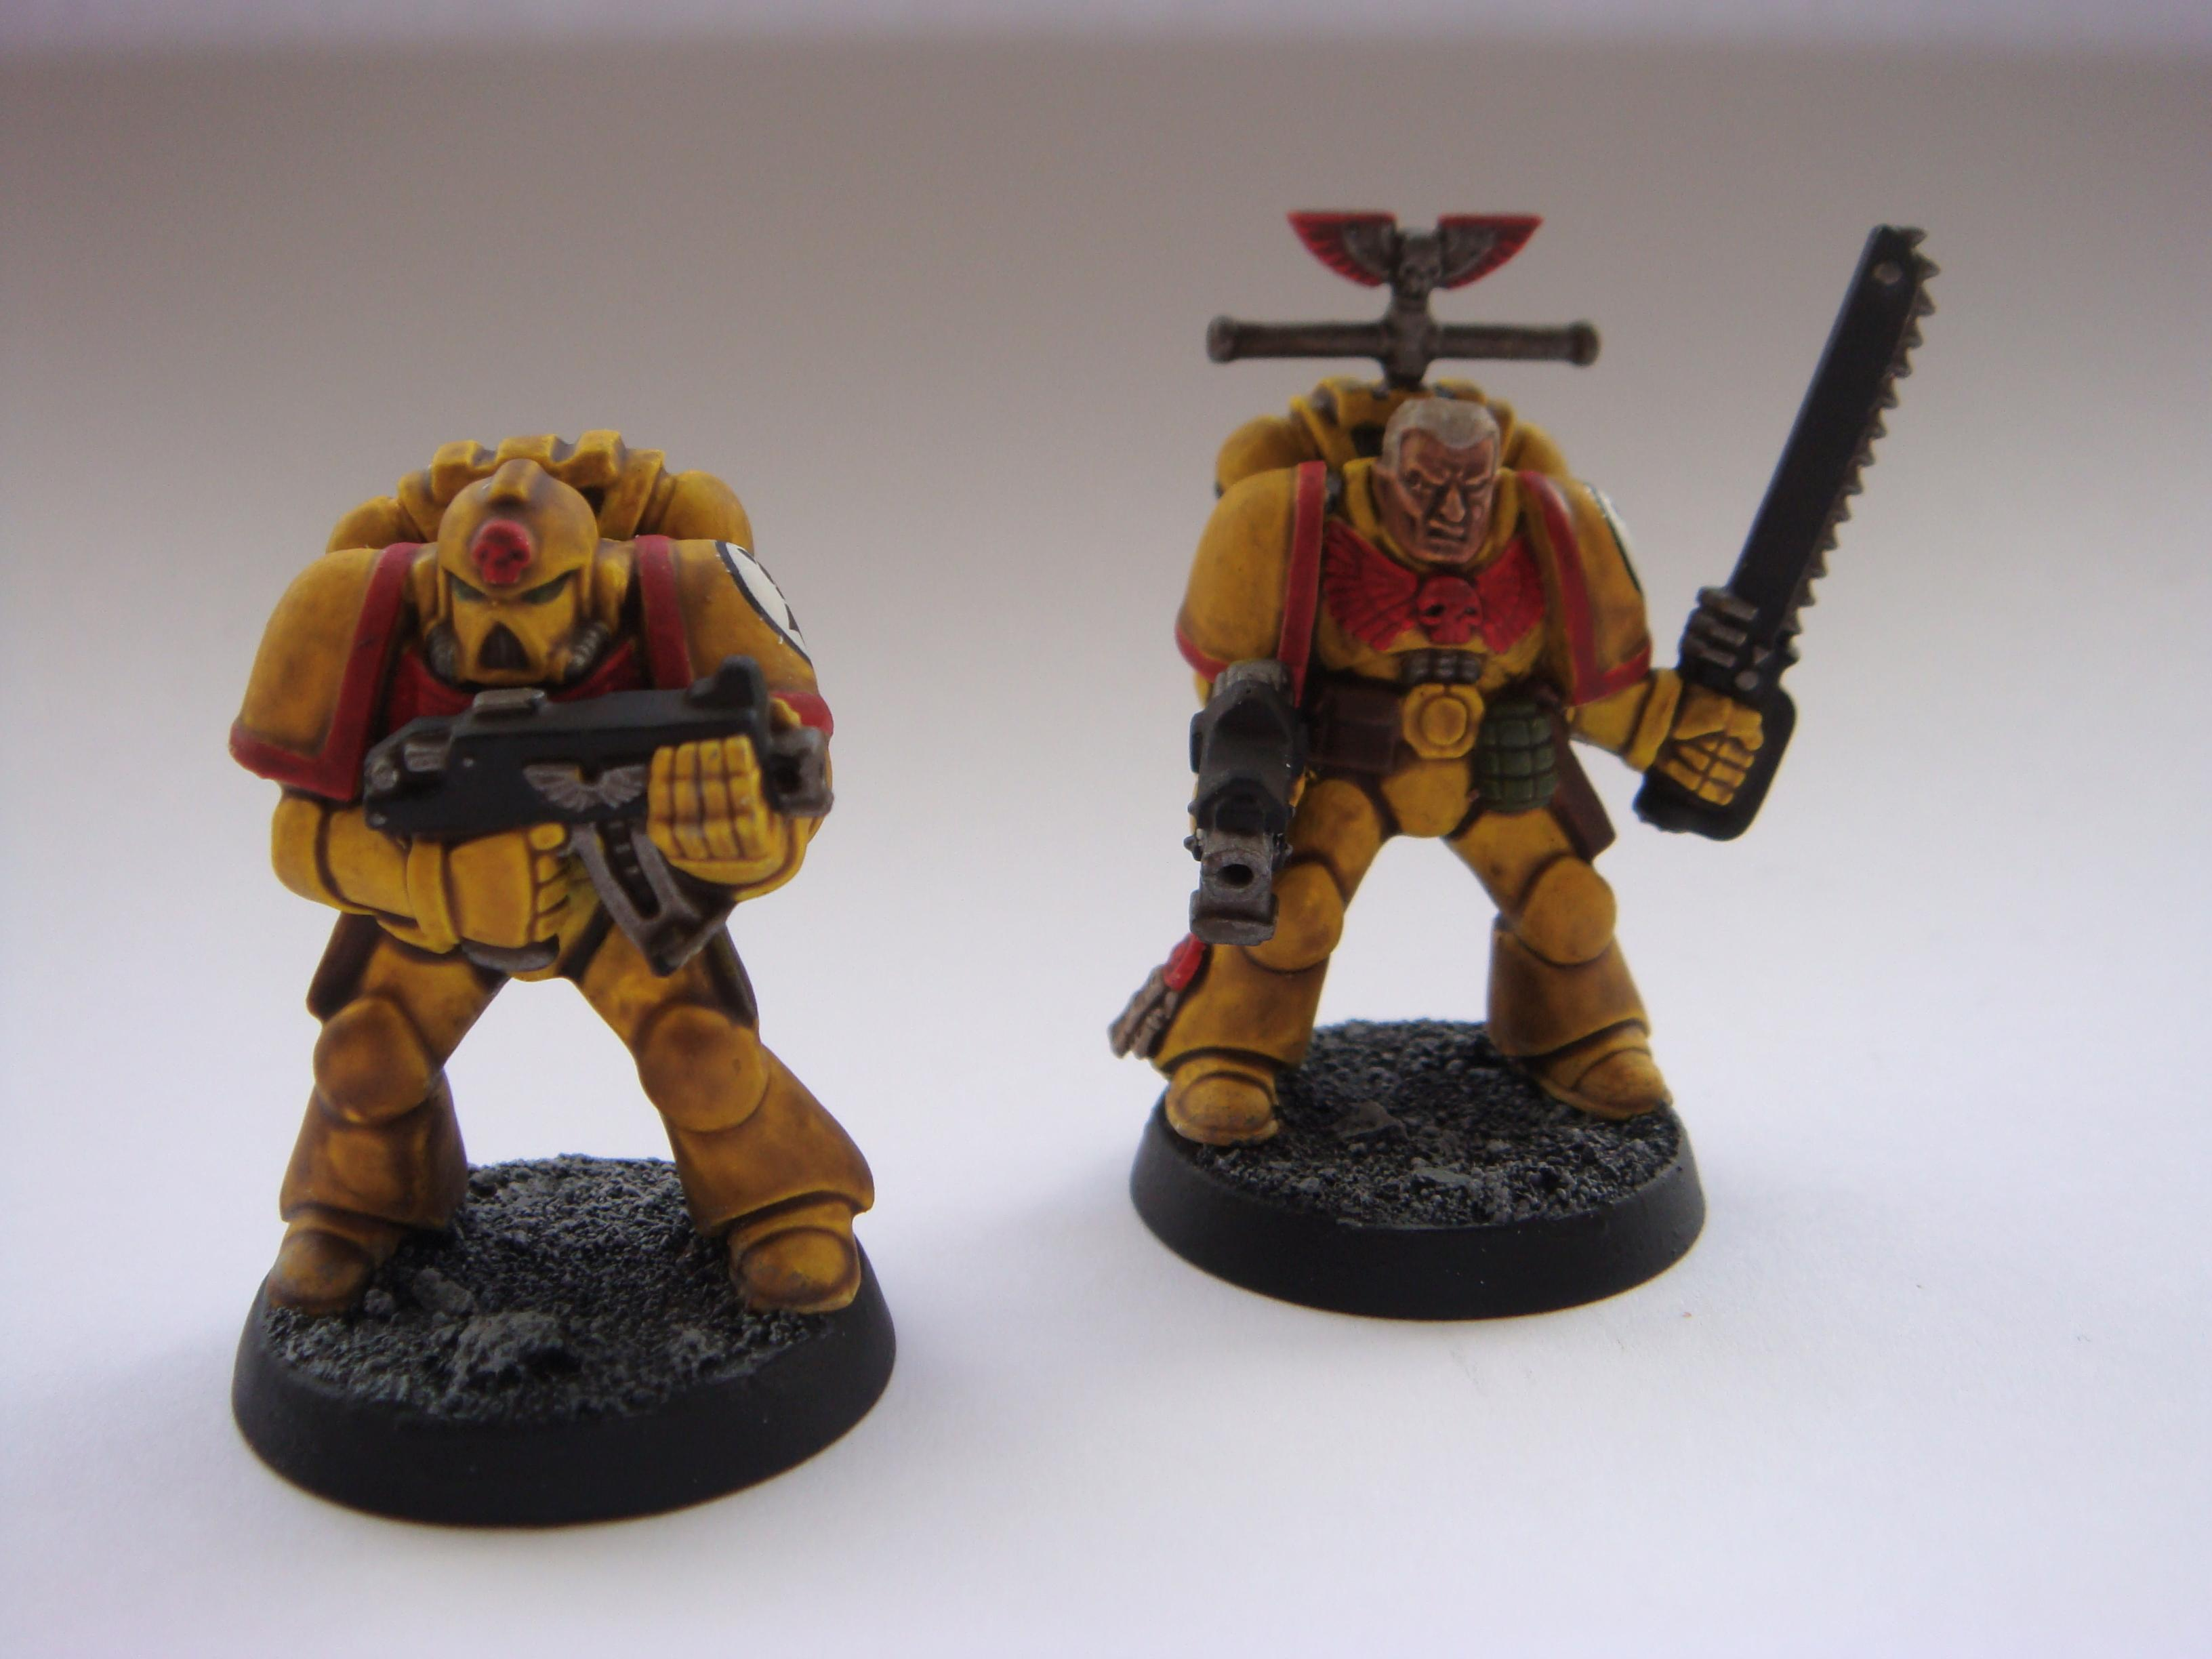 Dorn, Fist, Fists, Imperial, Imperial Fists, Red, Shading, Space Marines, Yellow